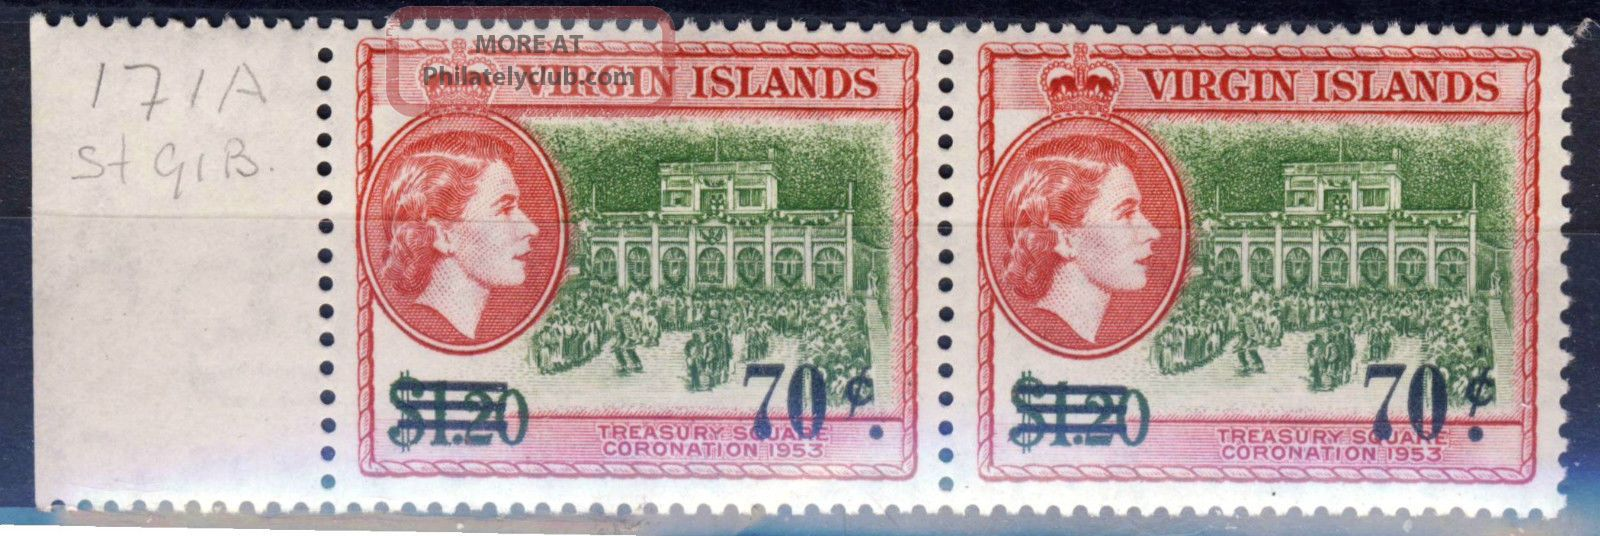 British Virgin Islands Qe Ii 1962 70c.  Surcharge Variety Stop To R Sg 171a British Colonies & Territories photo